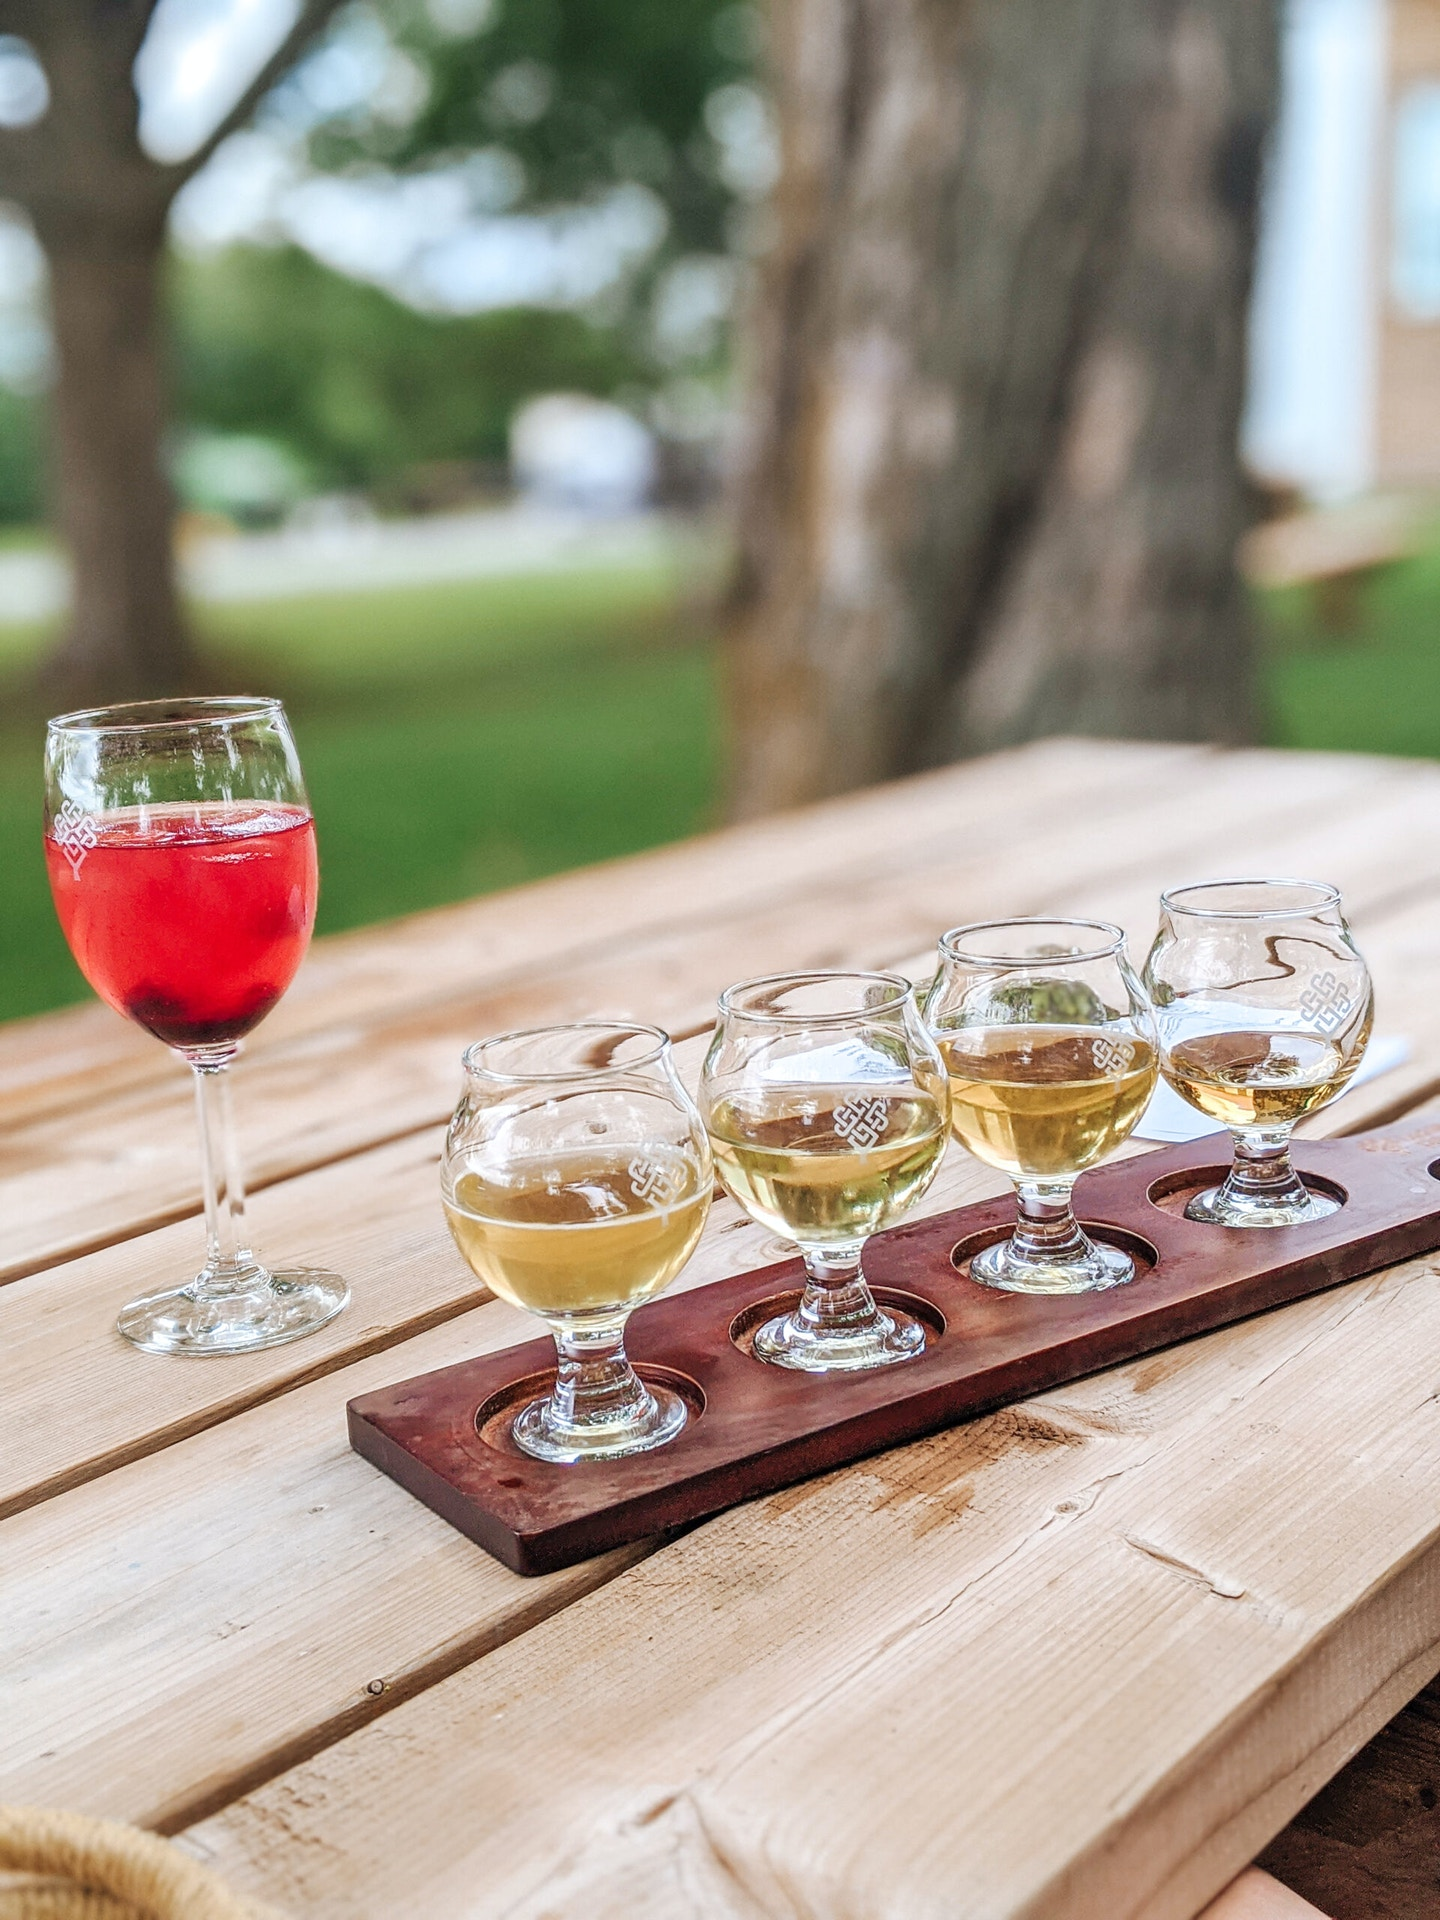 Loch Mor Cider Co is one of my favourite cider companies in Prince Edward County. A tasting flight of their dry cider can't be missed!